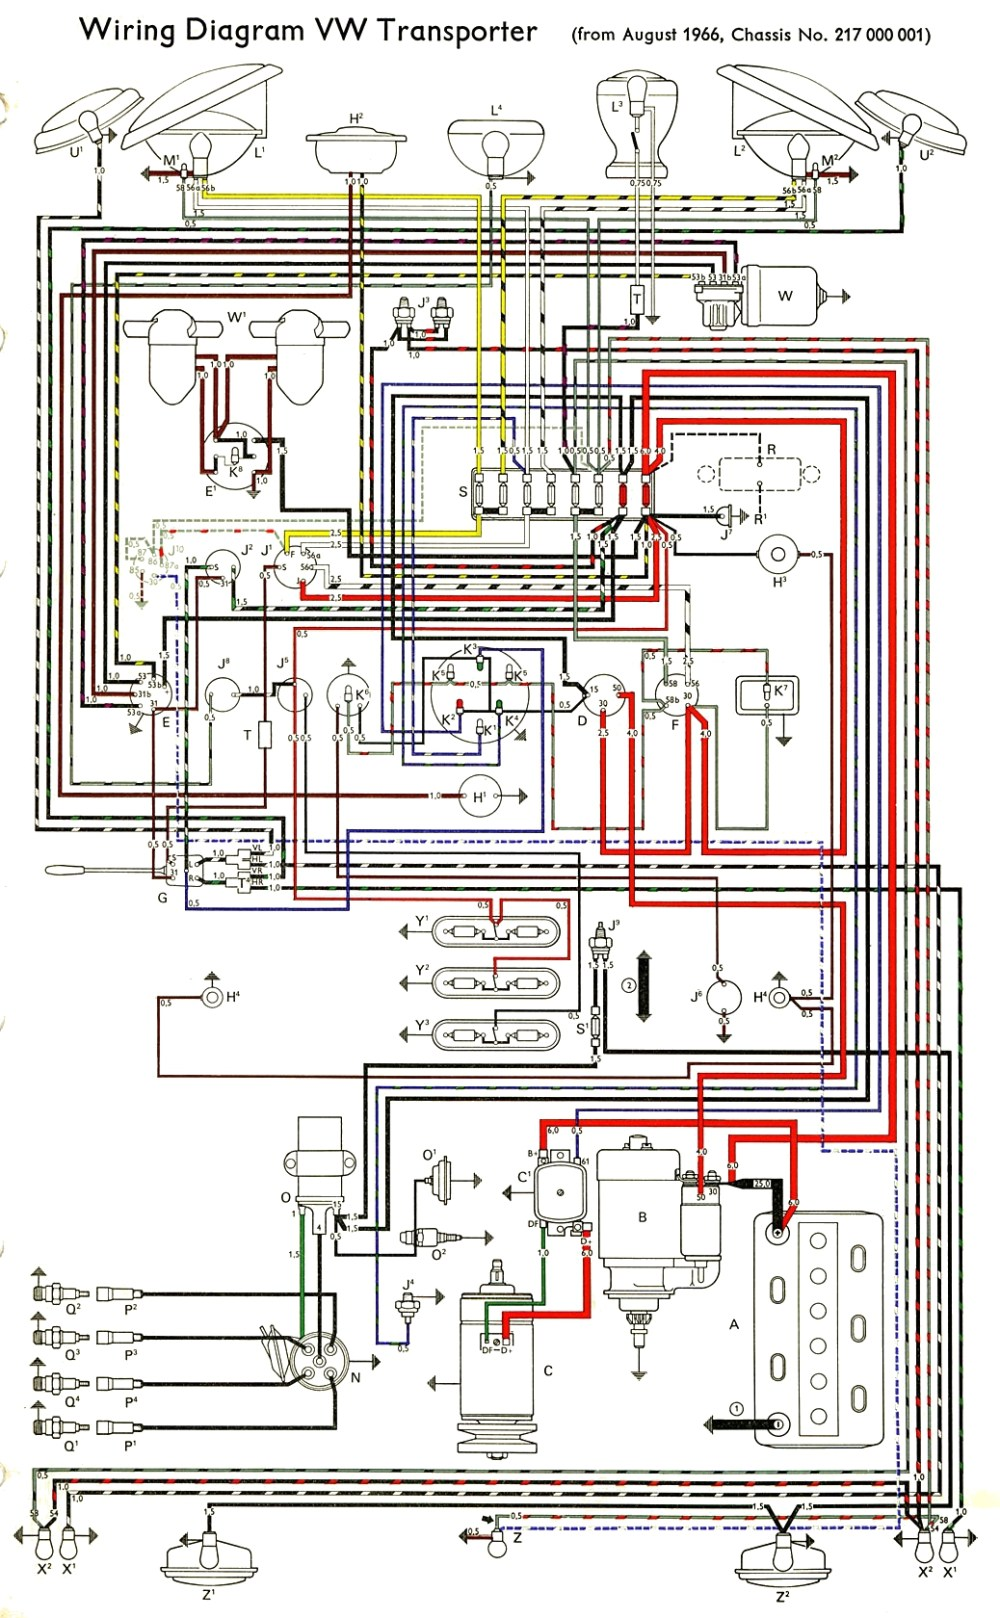 medium resolution of wiring 1967 diagram vw beetle ignition simple wiring diagram 1973 vw beetle wiring diagram 1967 vw